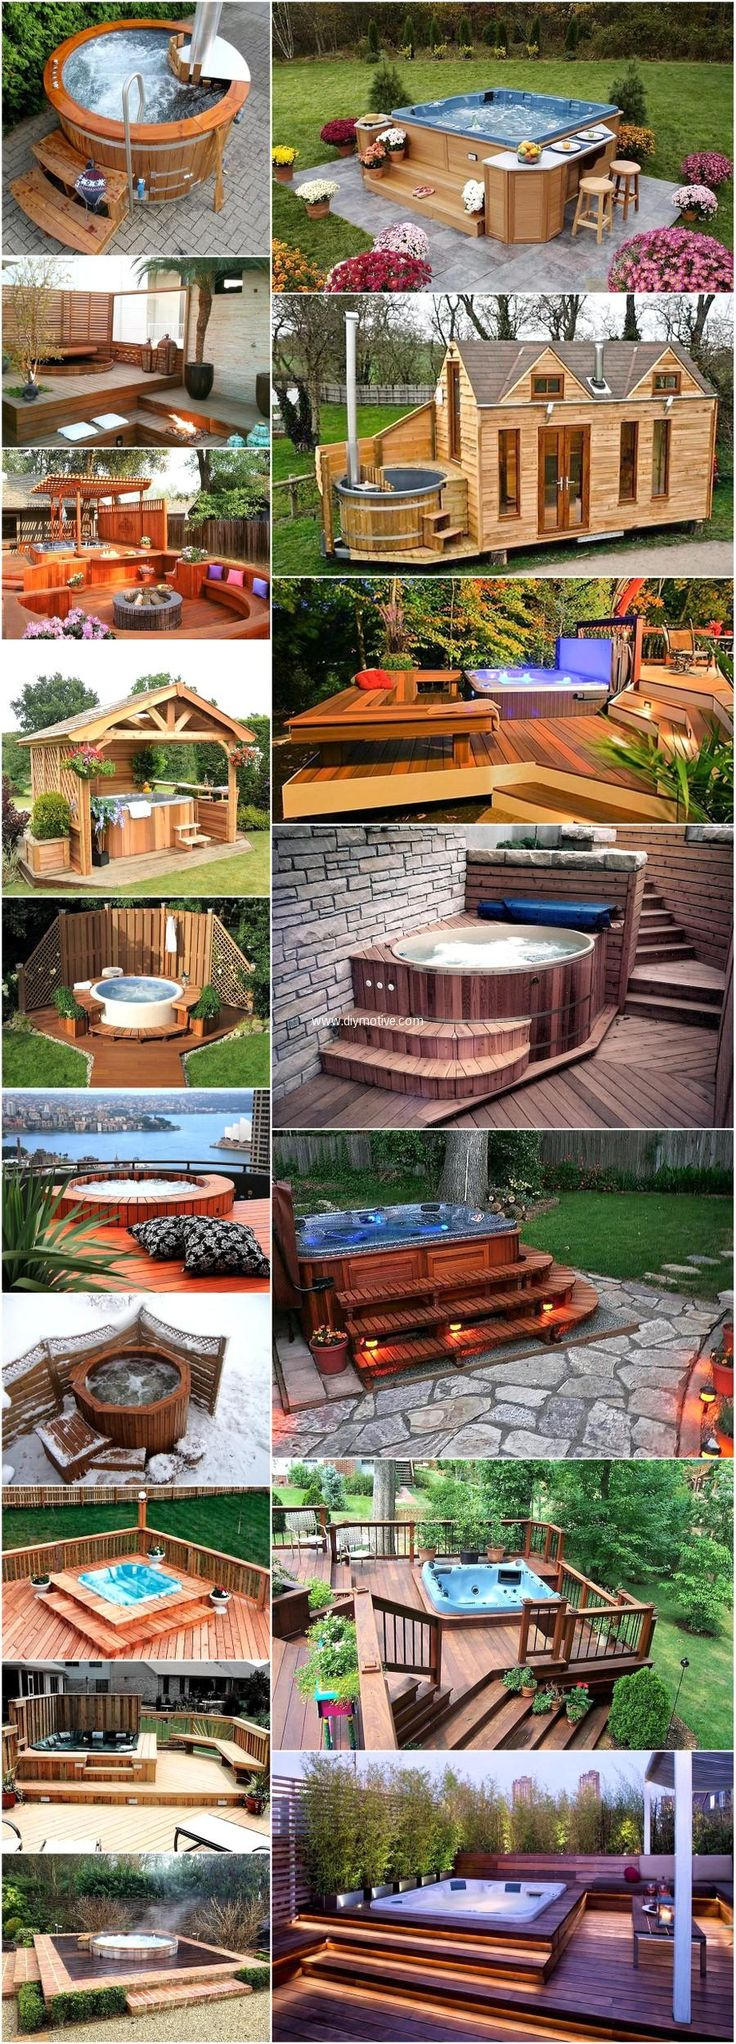 Mind Blowing Ideas for Patio Hot Tubs